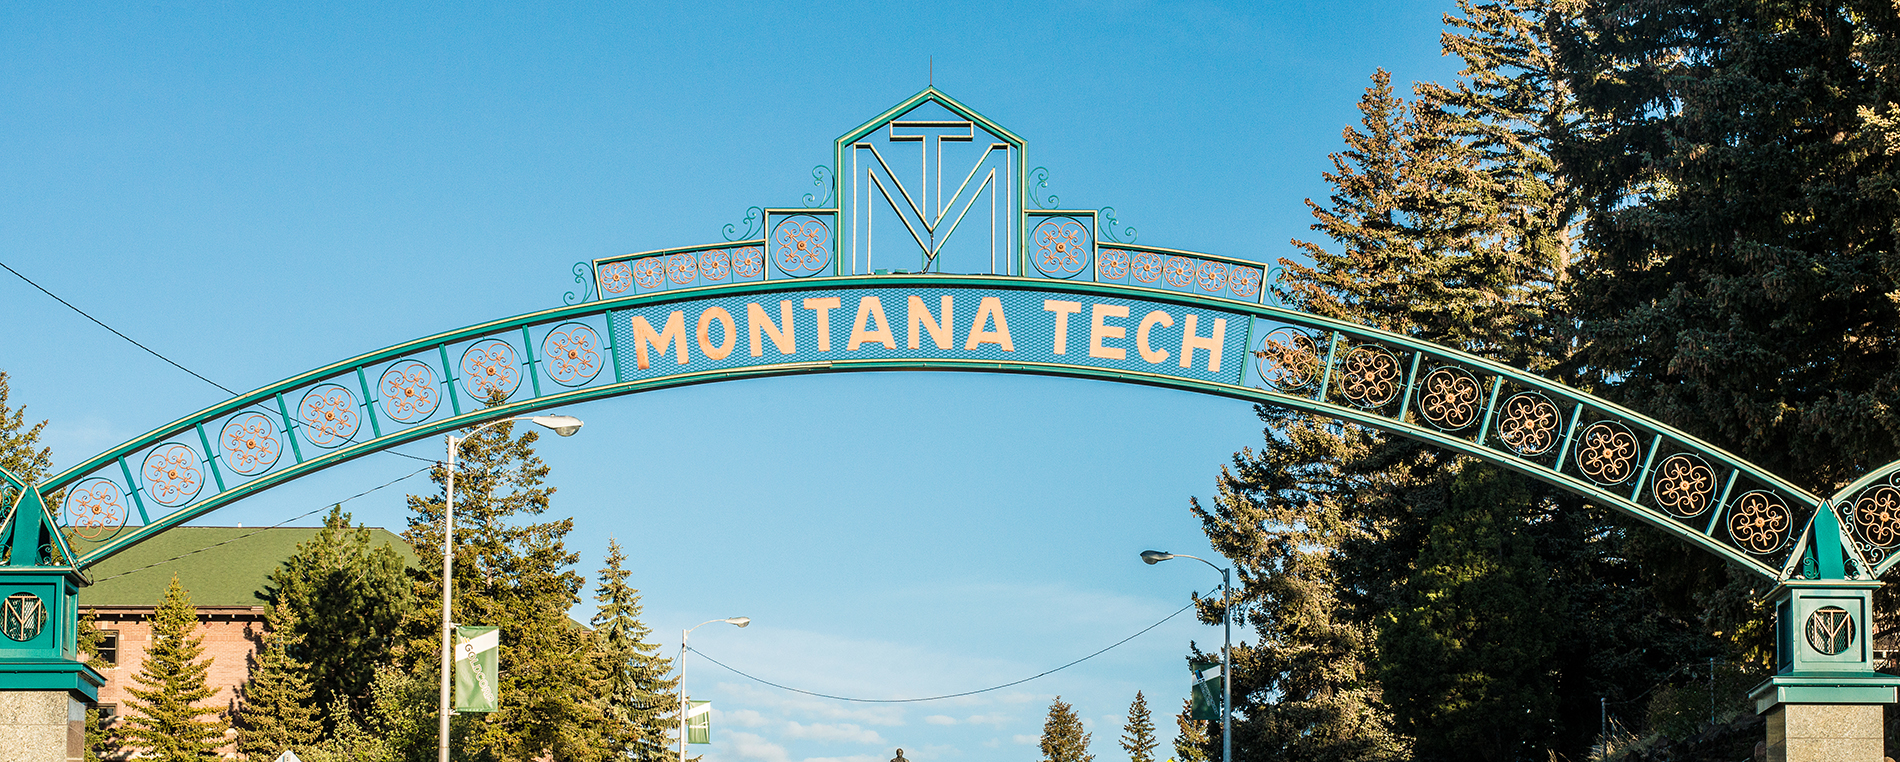 Montana Tech Named a Top College by the Princeton Review